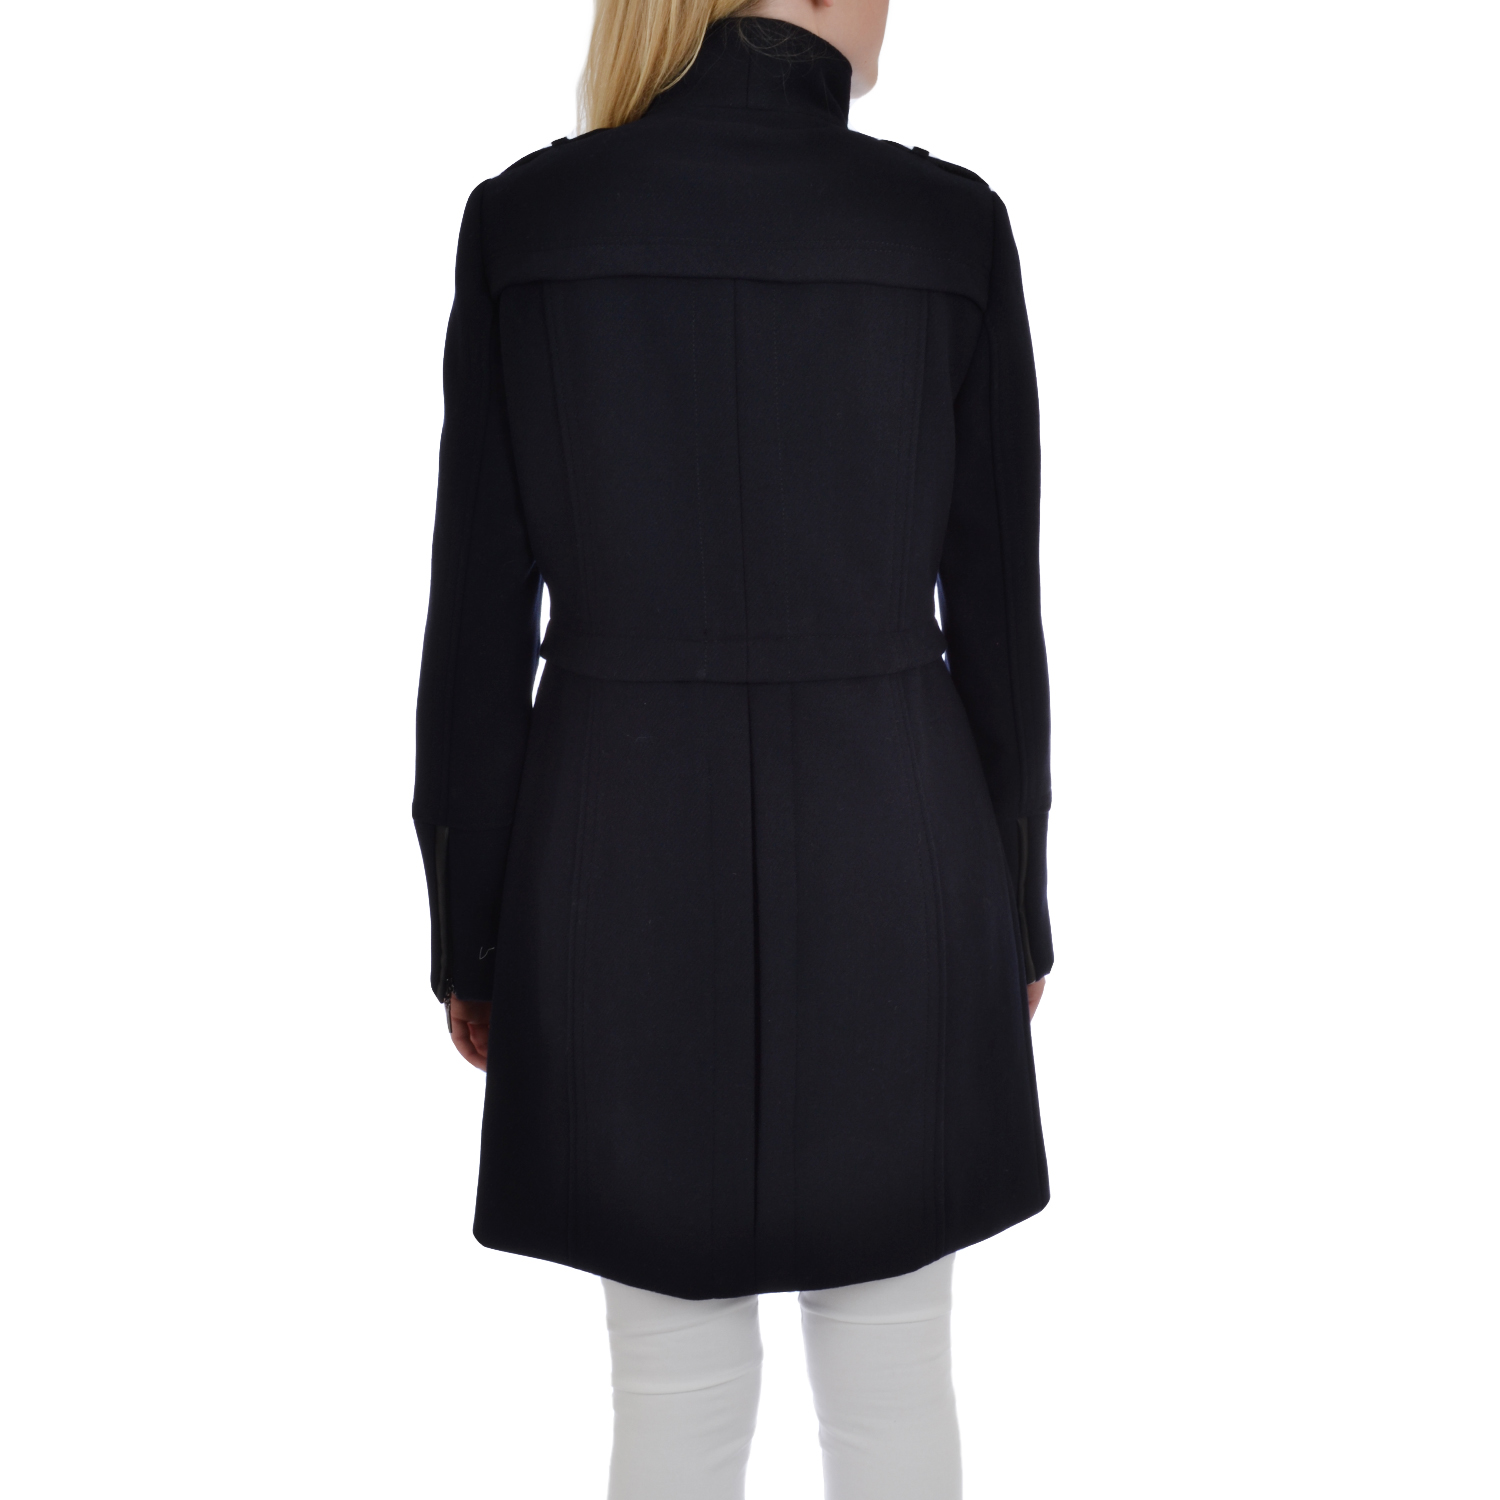 Marks and spencers womens coats